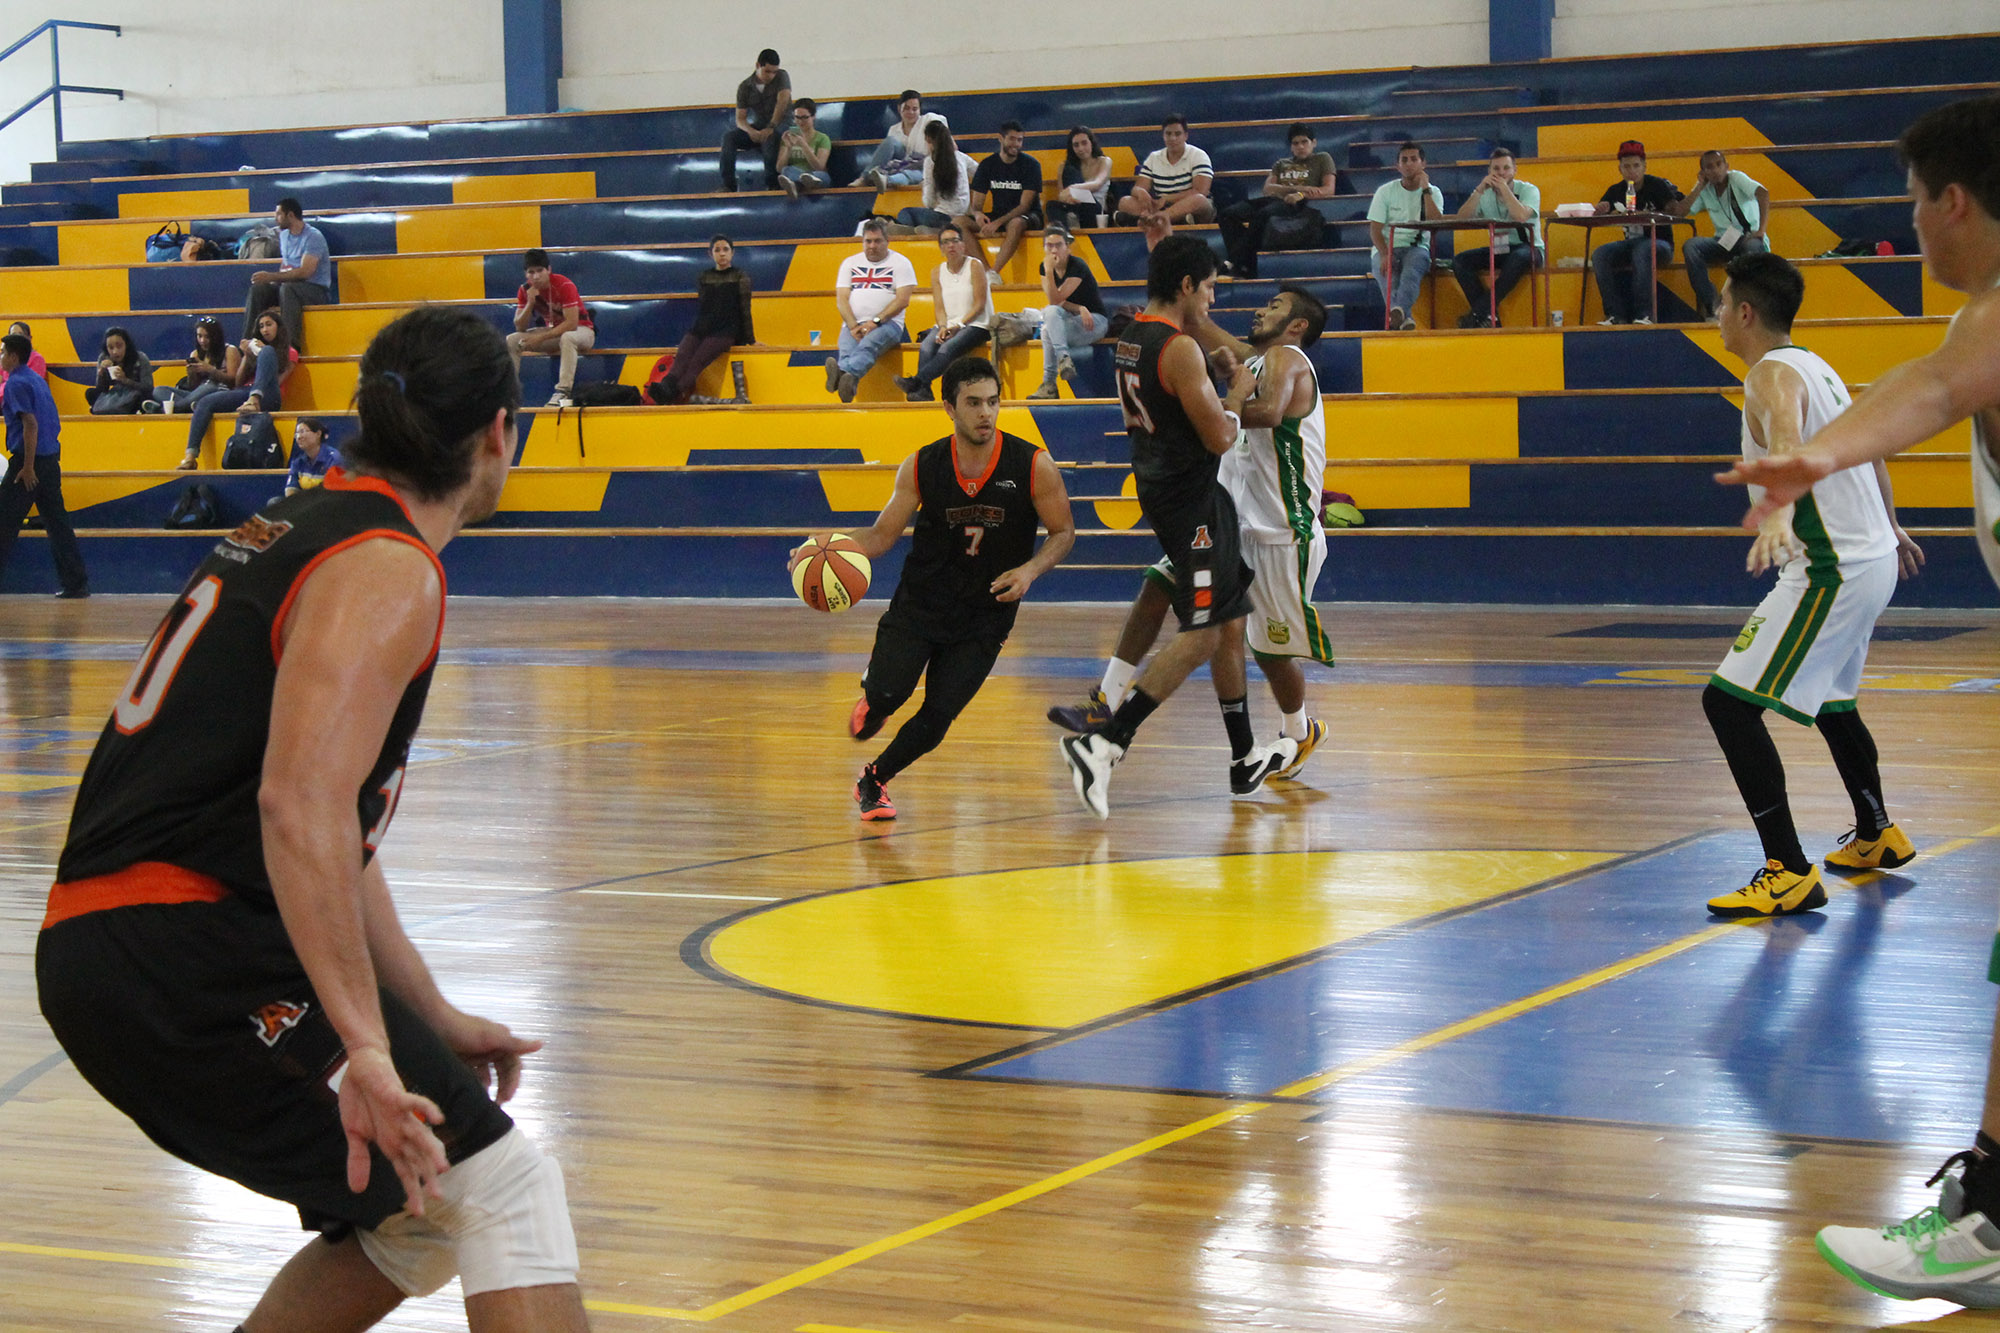 Universiada nacional 2015-basquetbol  ITESM Guadalajara vs Universidad Marista de Merida-foto Norma Martinez 4